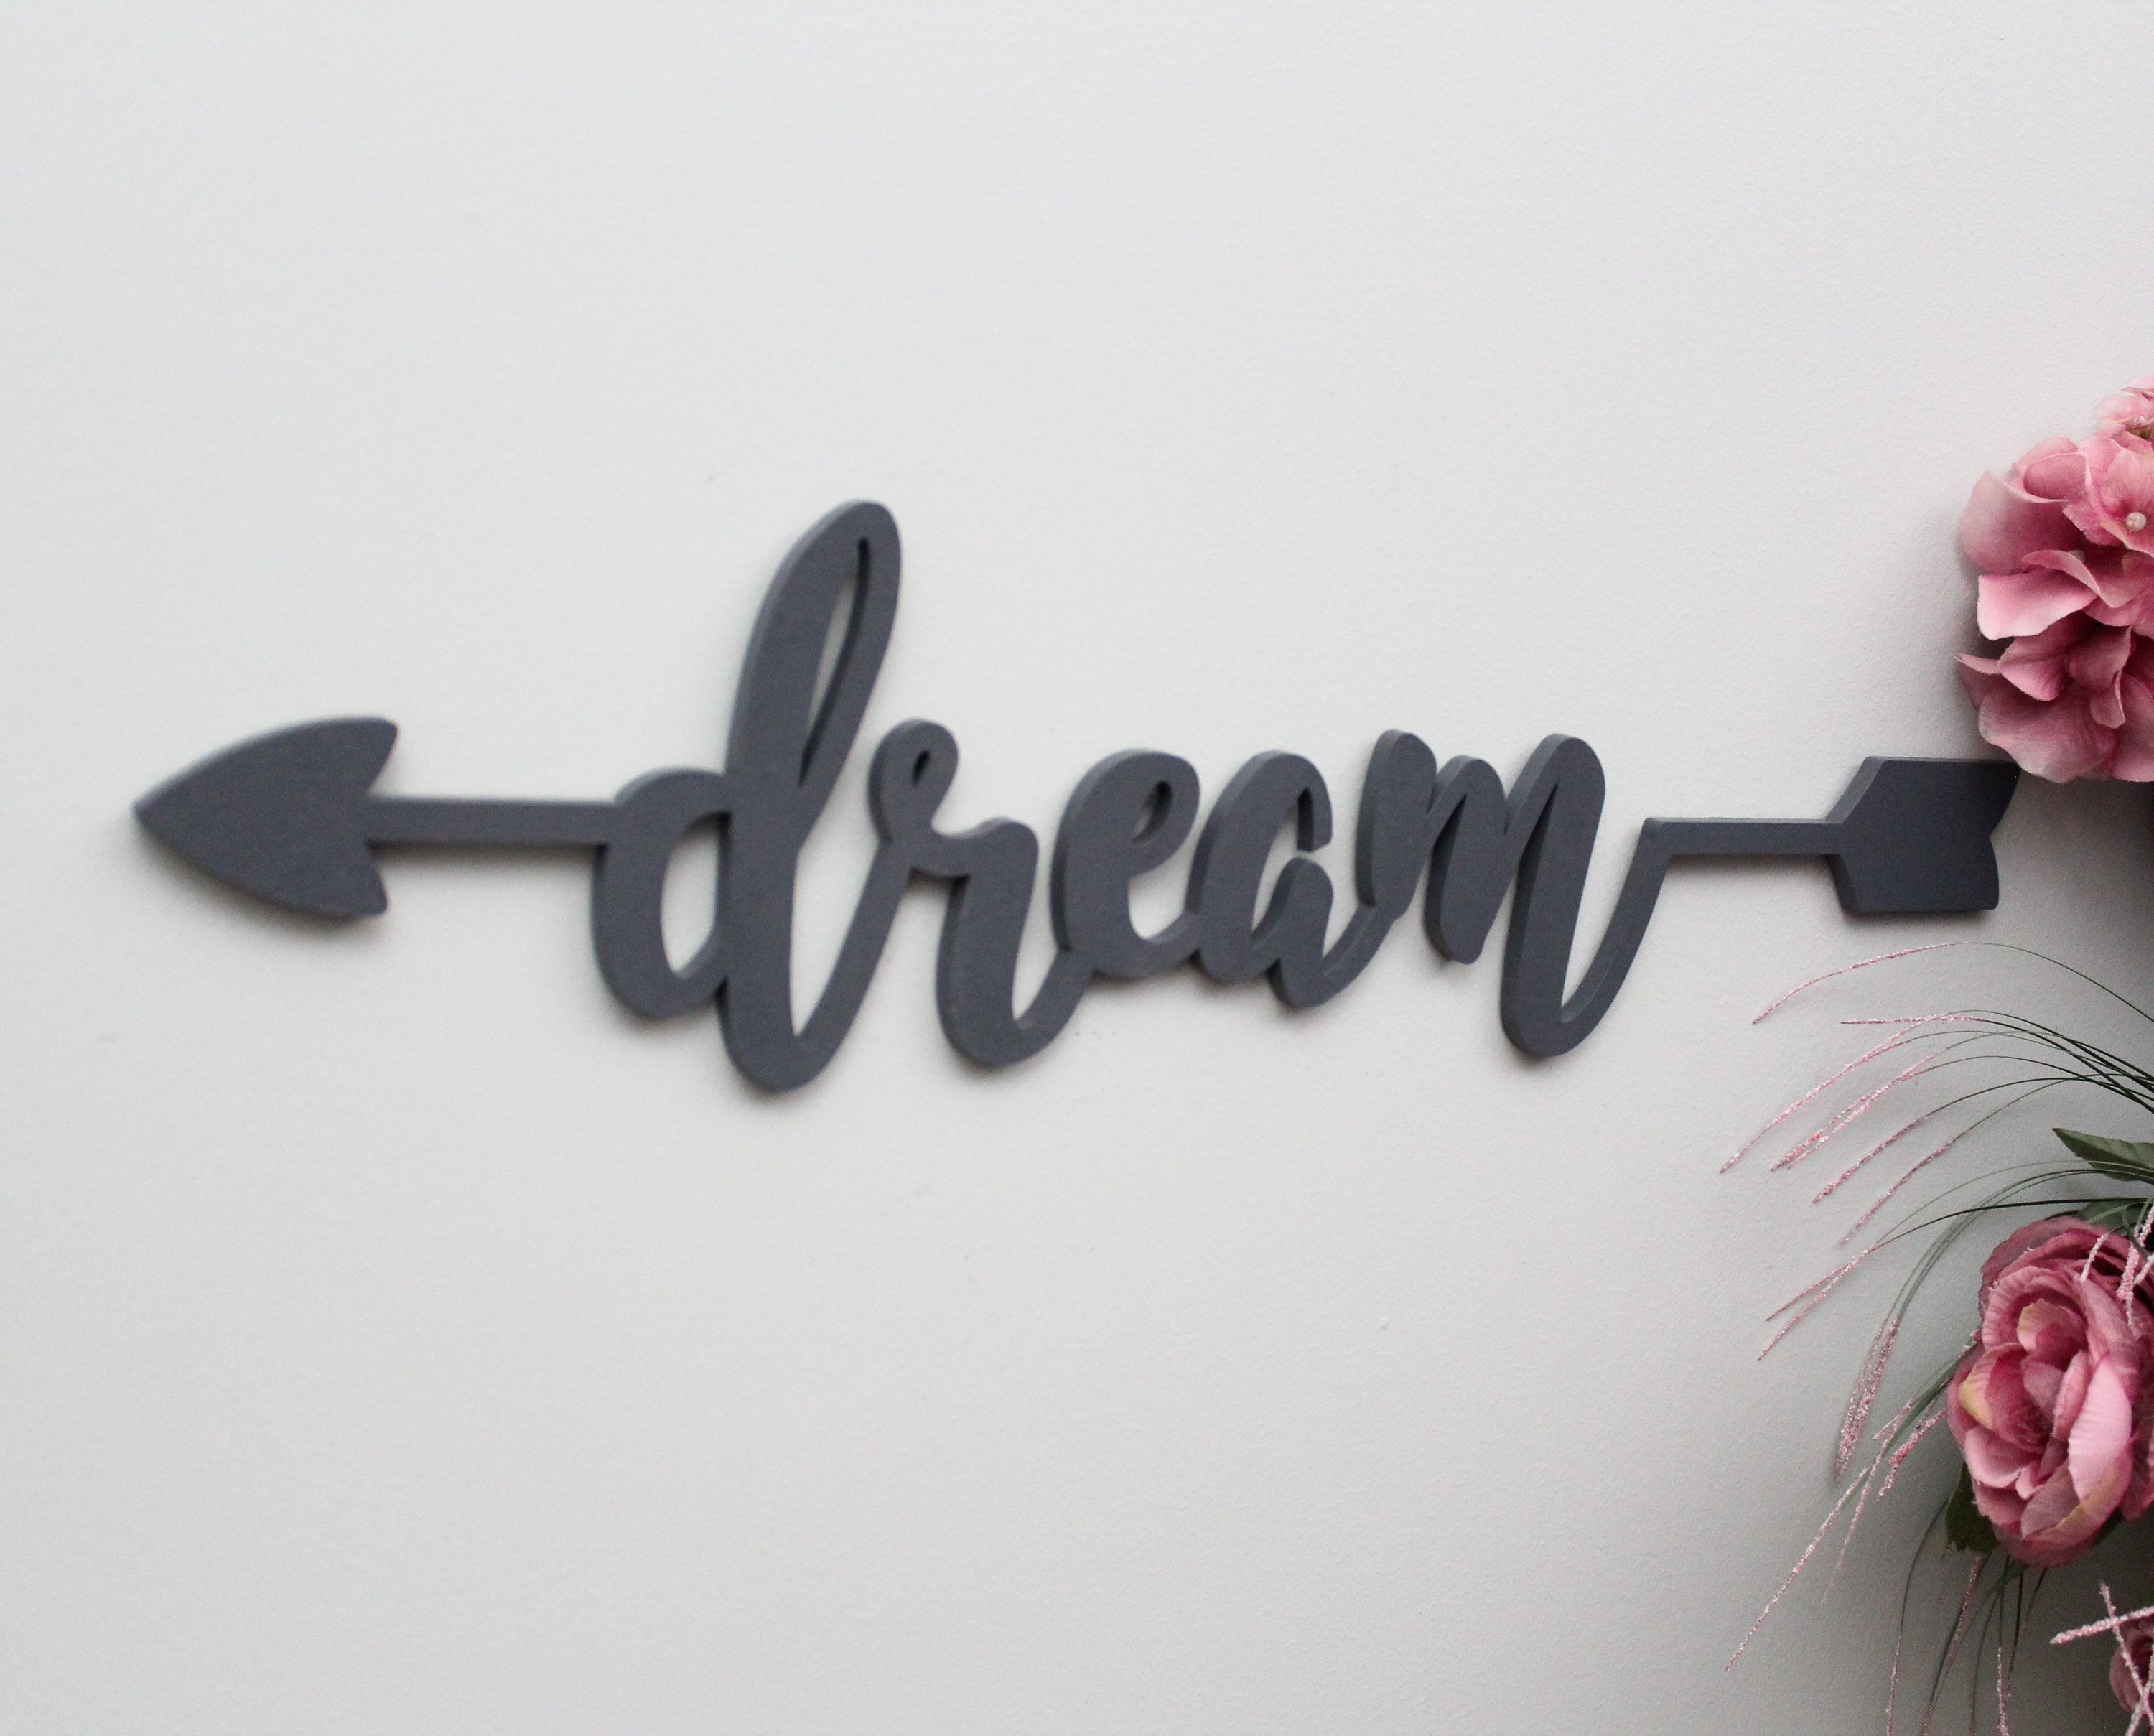 Marvelous Dream Sign, Dream Wooden Arrow Sign, Dream Wall Decor, Wood Sign Art, Wood  Dream, Office Decor, ...